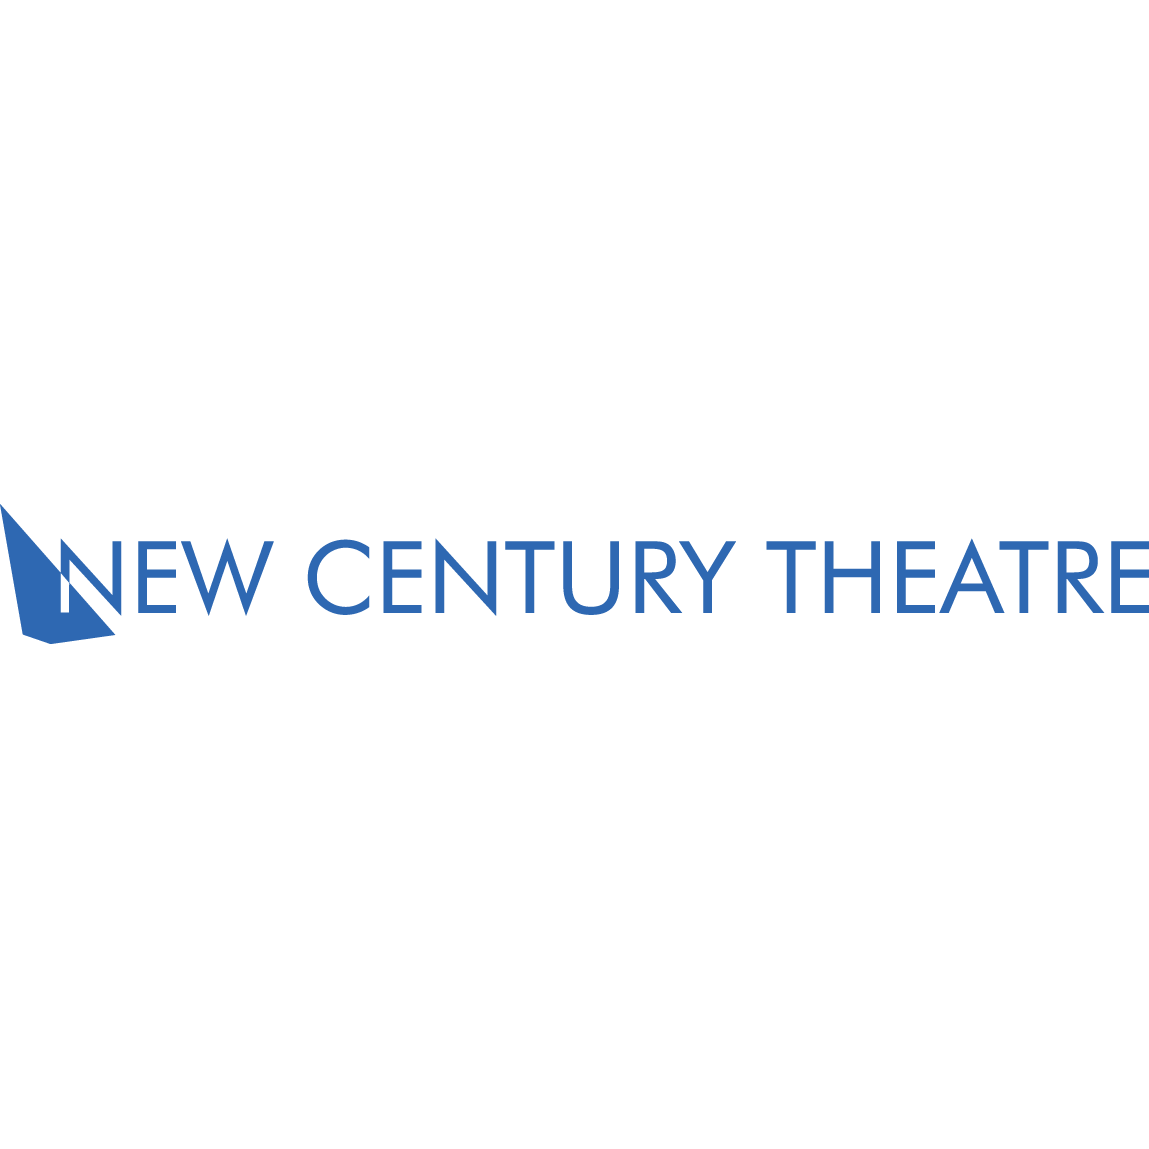 New Century Theatre-LOGO